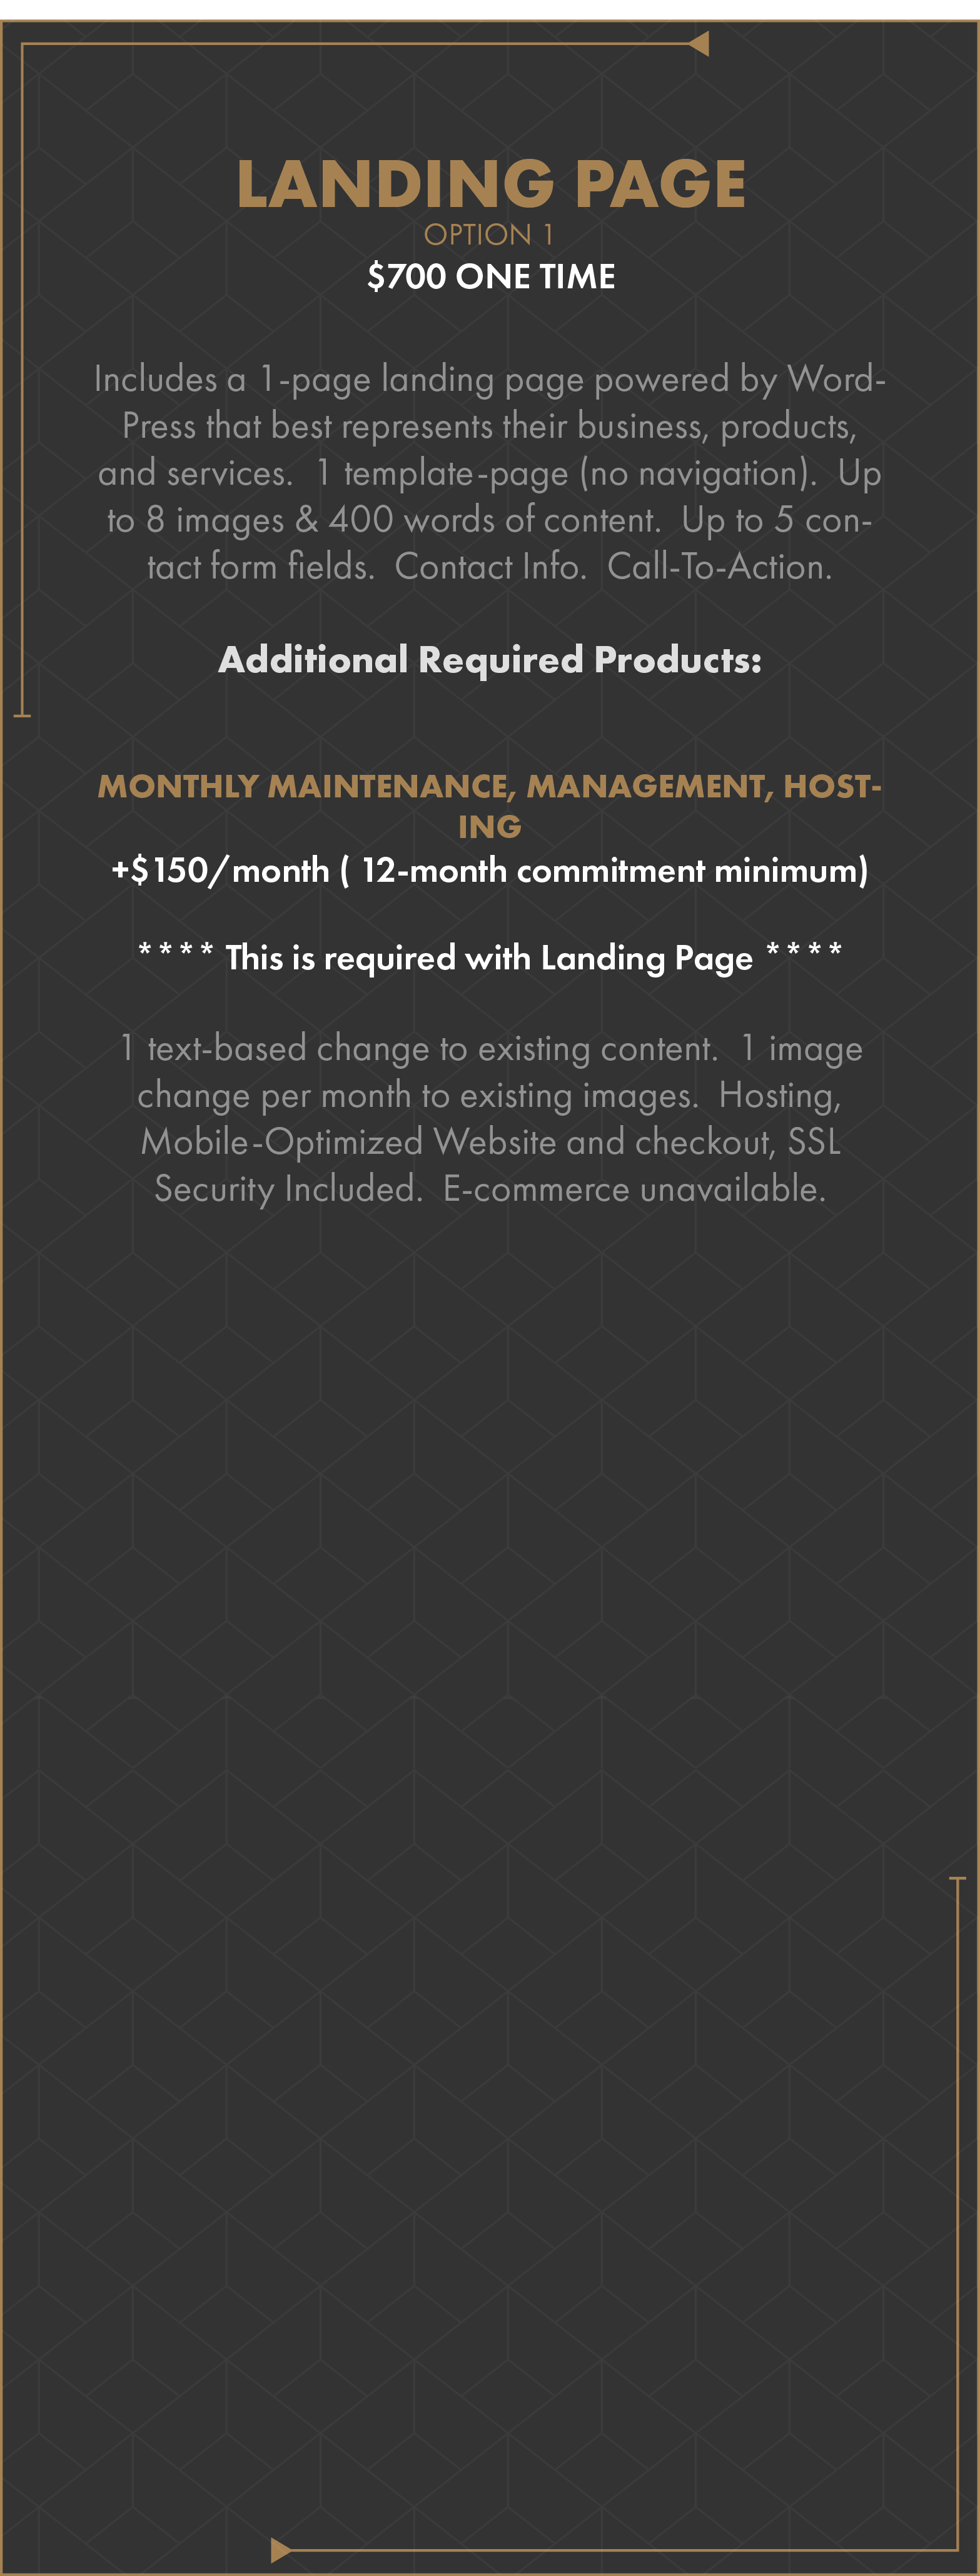 Landing Page Info.png